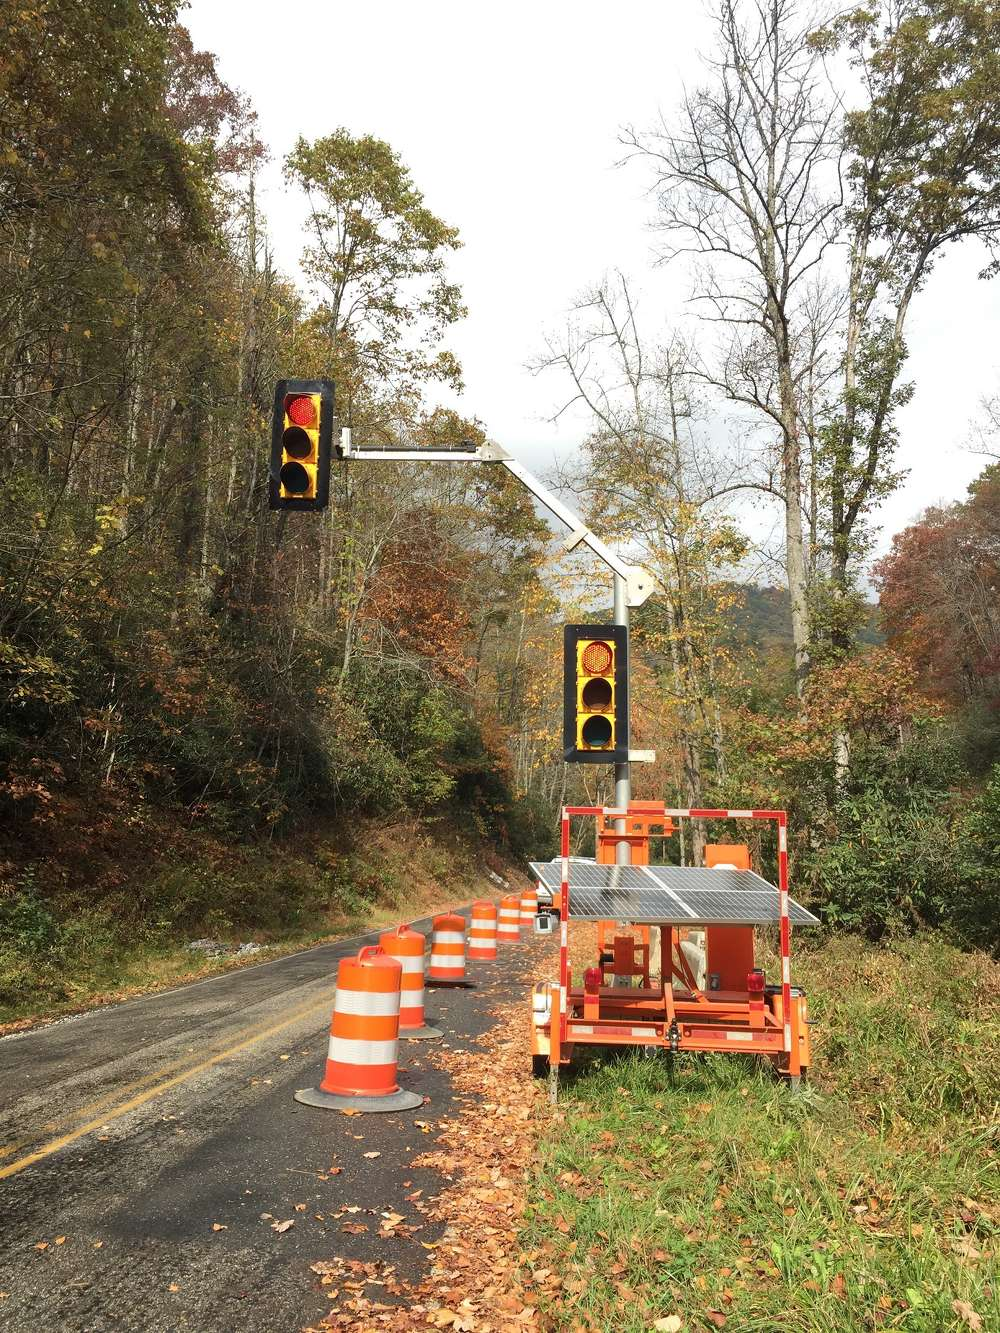 Charlotte-based Carolina Traffic Devices Inc. will now offer portable traffic signals from North America Traffic (NAT) to its road-building customers.